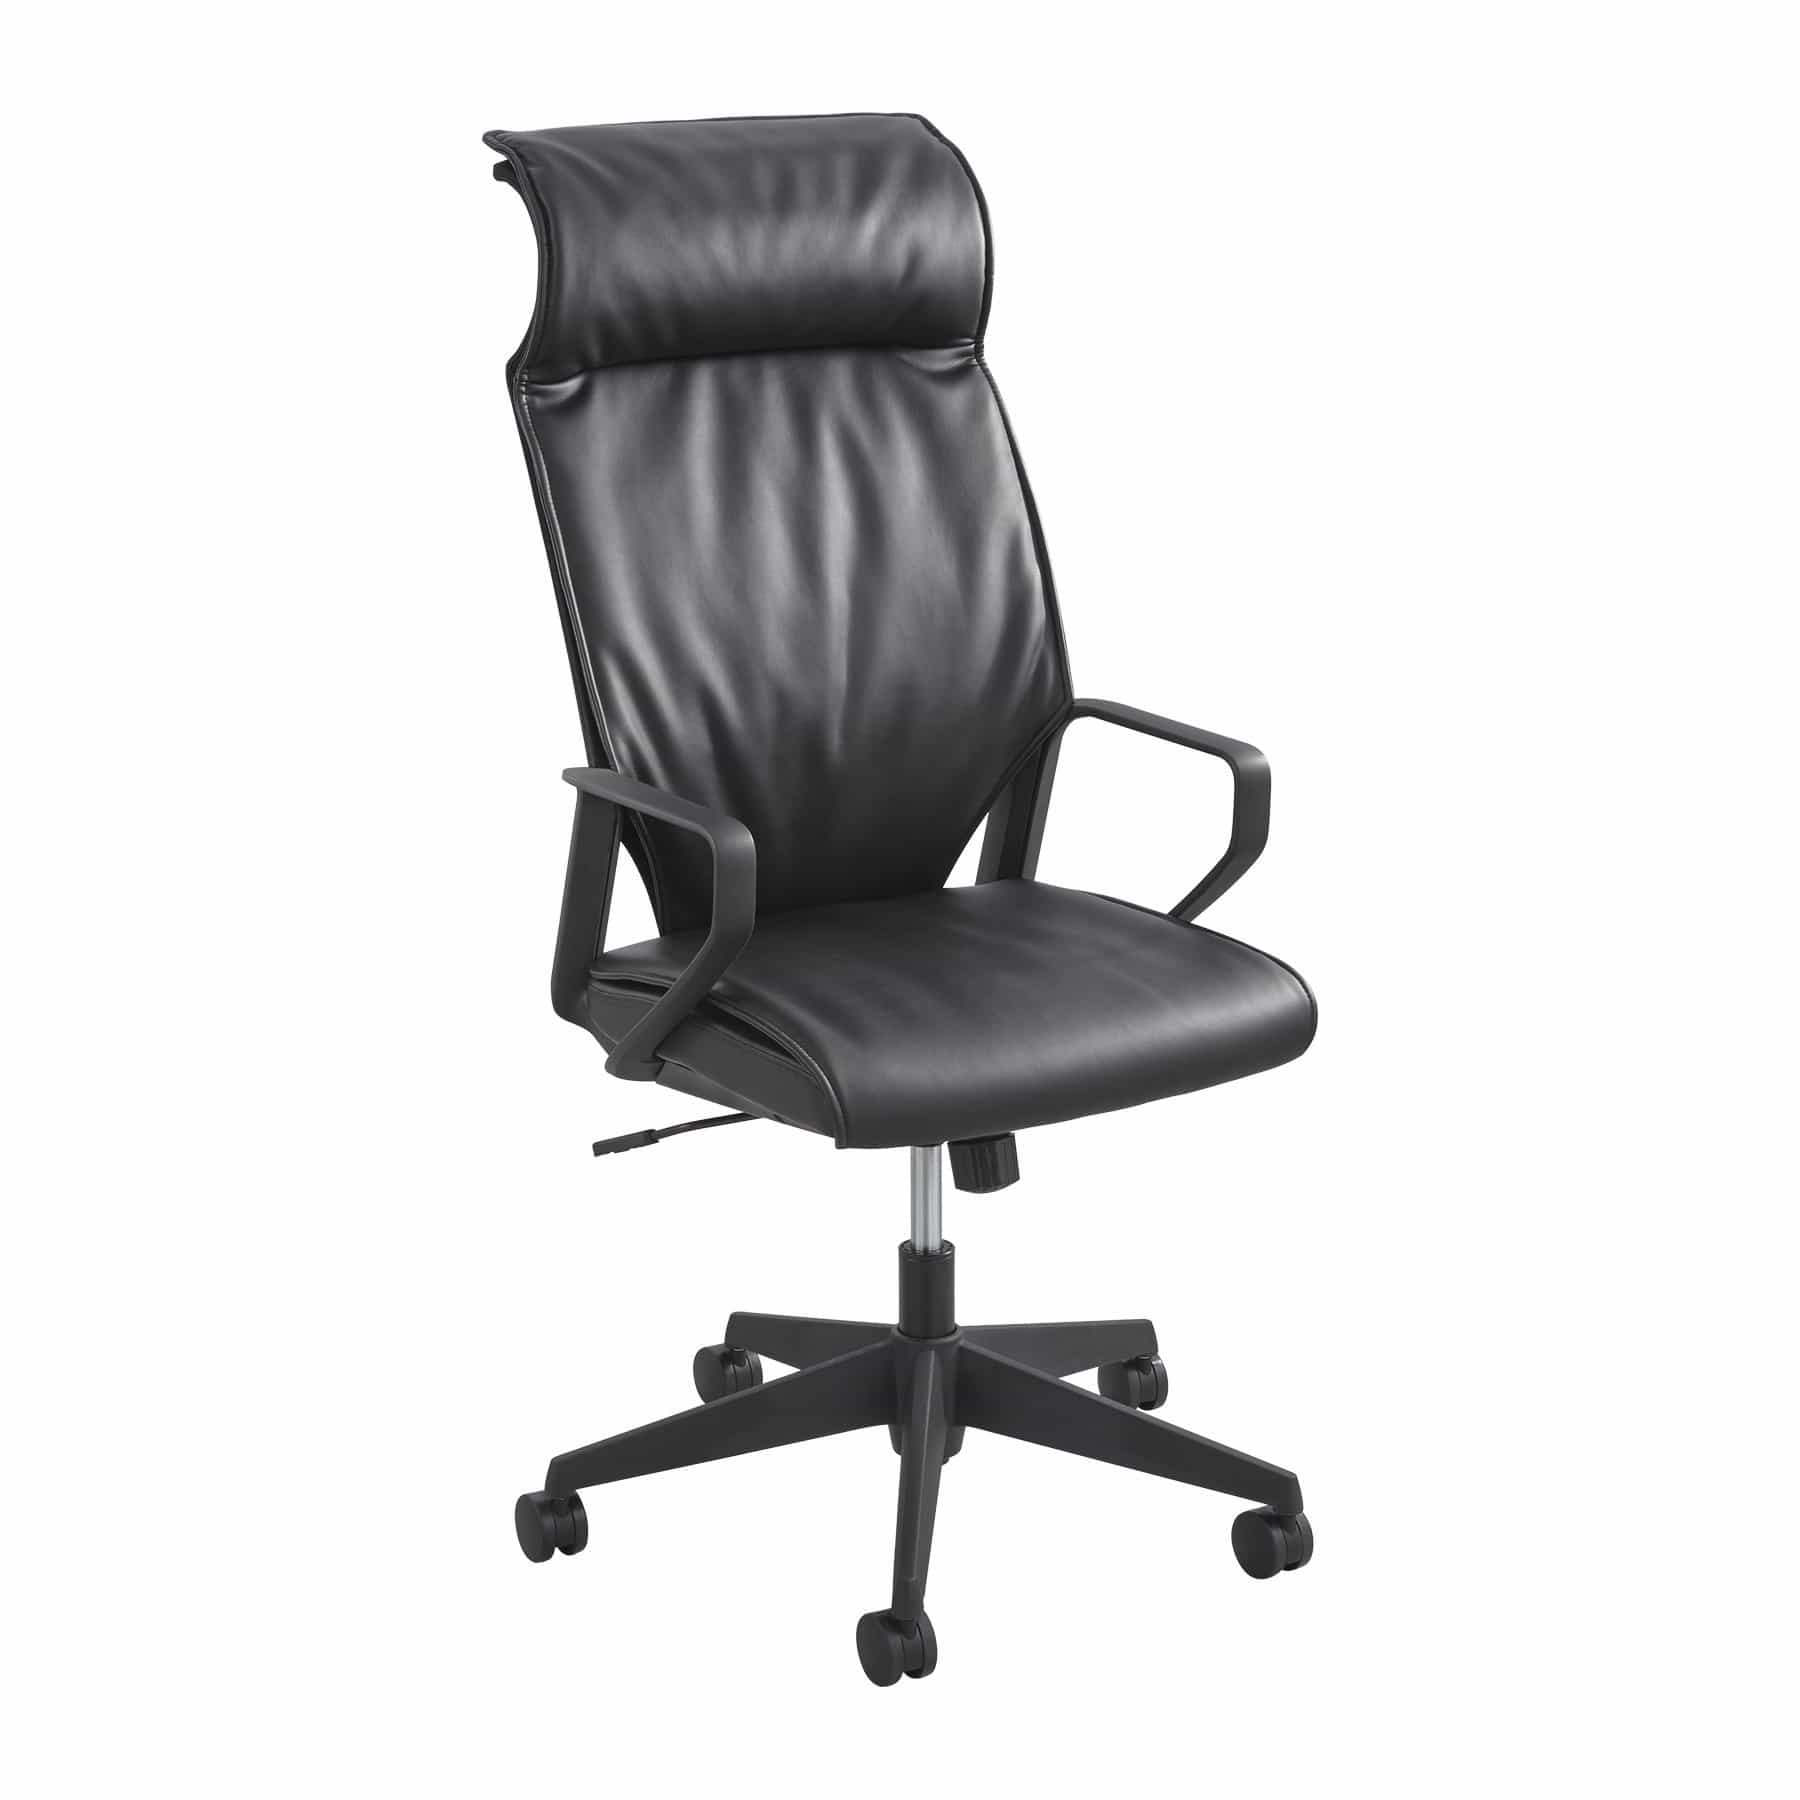 bedinhome - 5075BL Office Furniture Black Priya Leather seat & High Back Executive Chair - Safco - Executive Seating